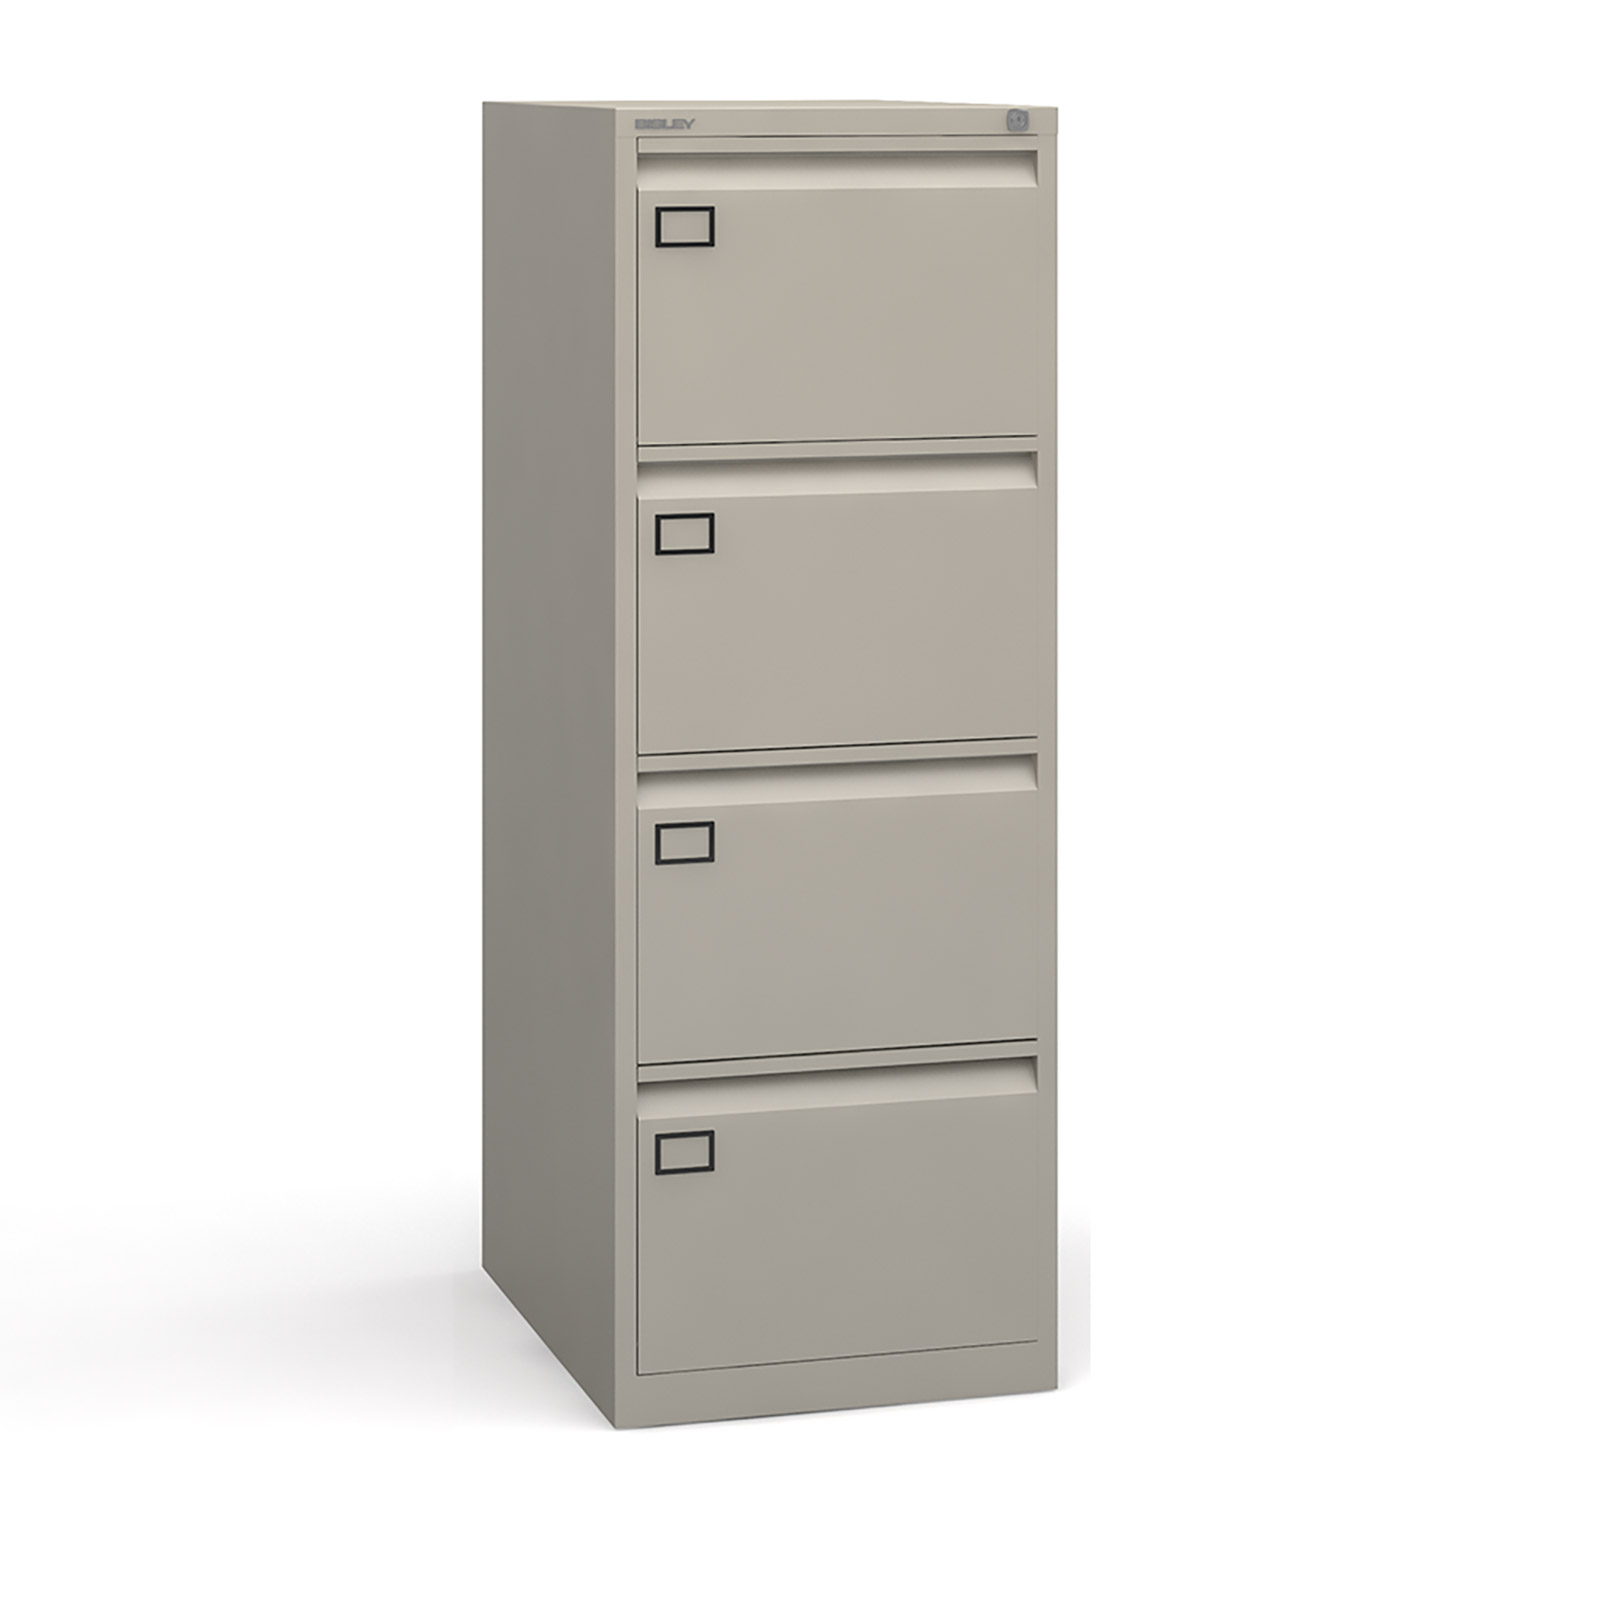 4 drawer executive filing cabinet Grey